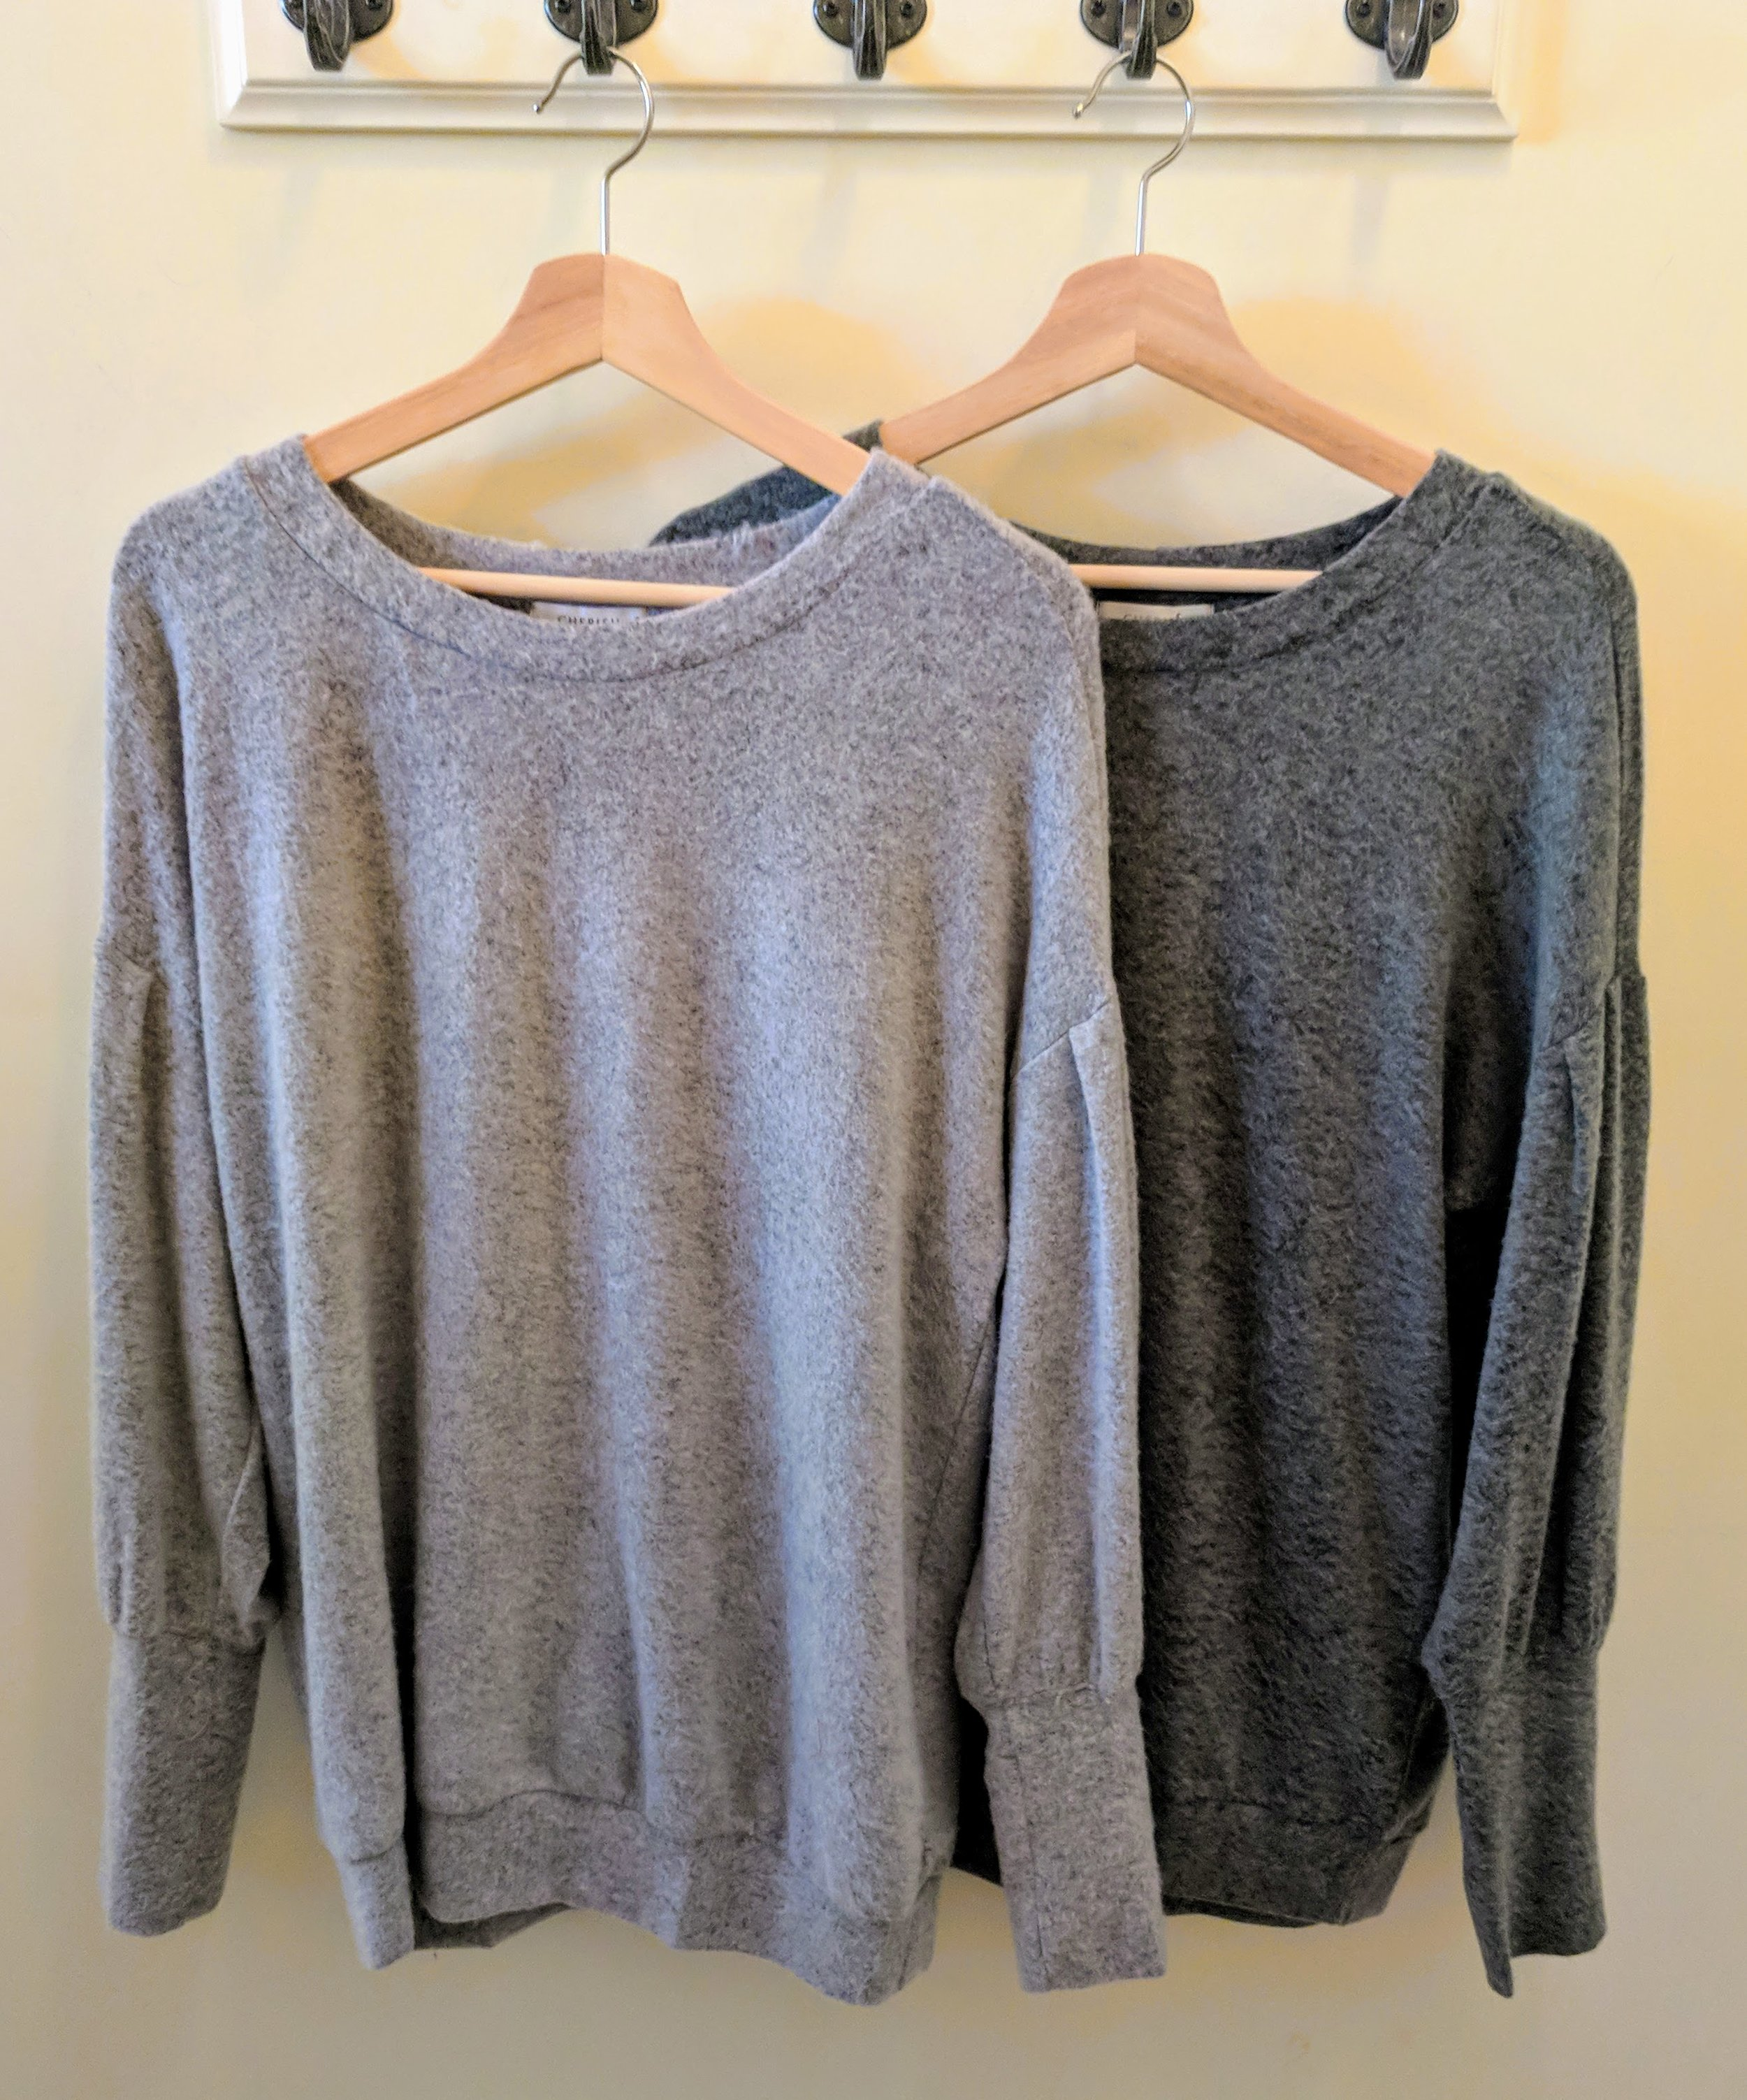 Heather Grey and Olive sweater with balloon sleeve and round neck.